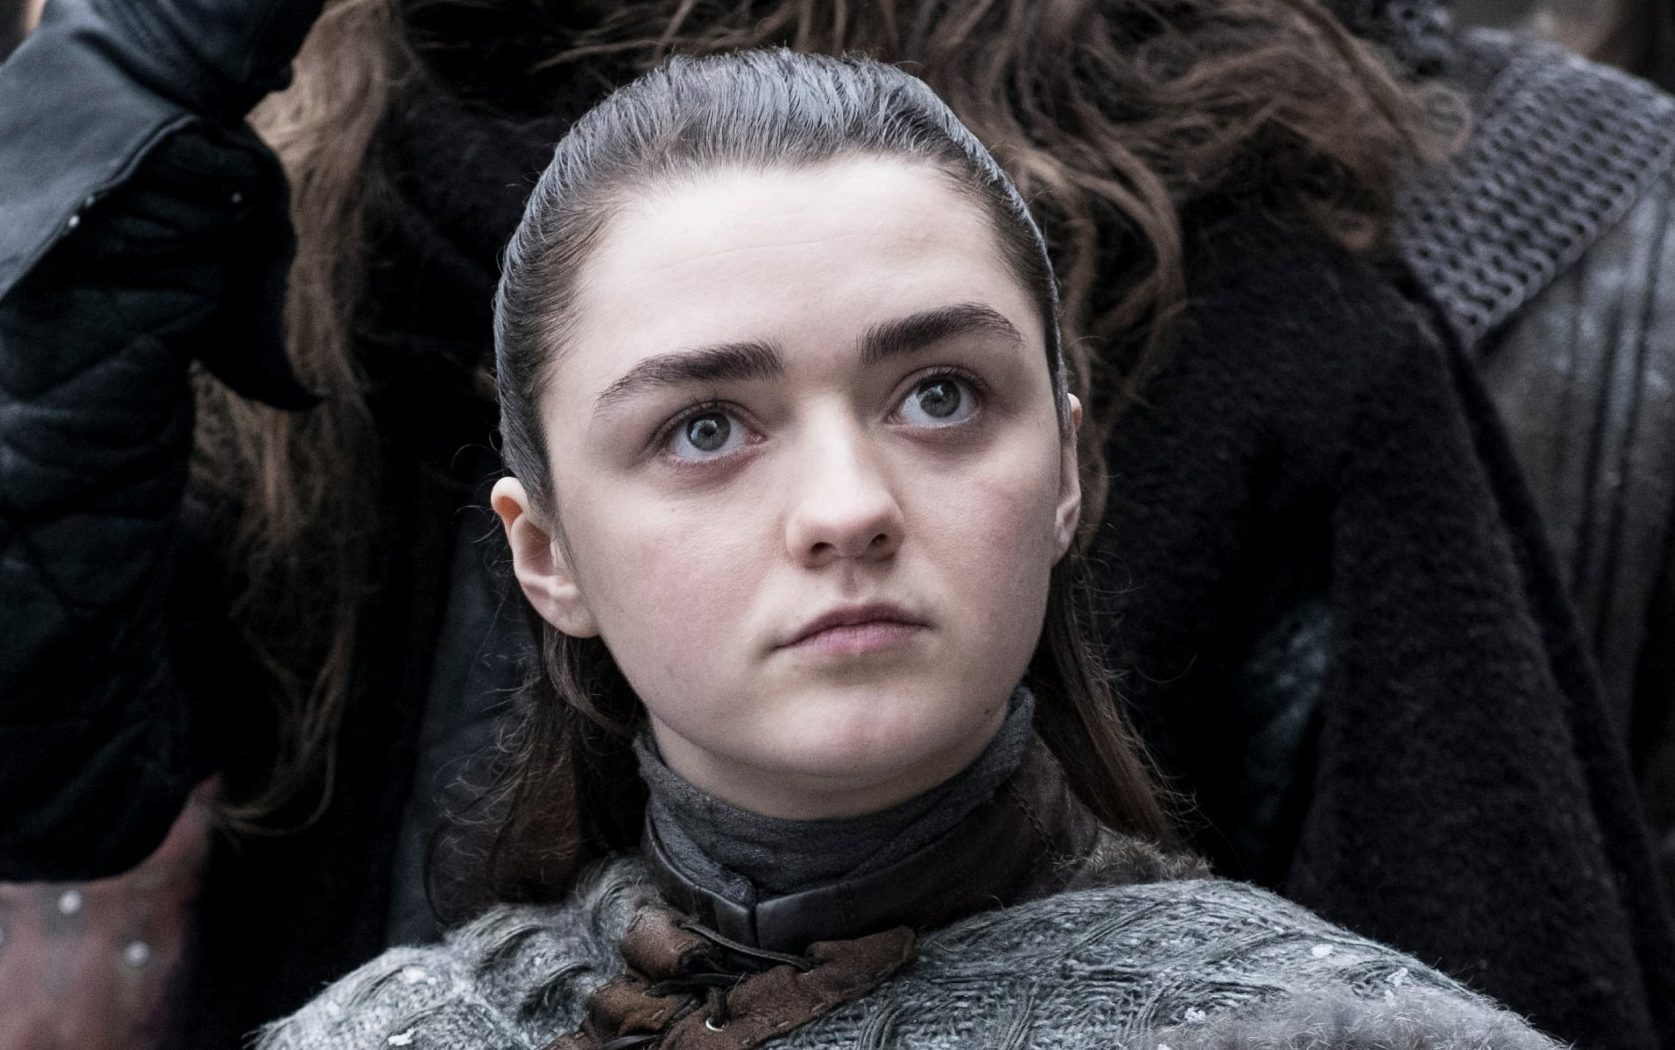 Which characters have green eyes in Game Of Thrones?